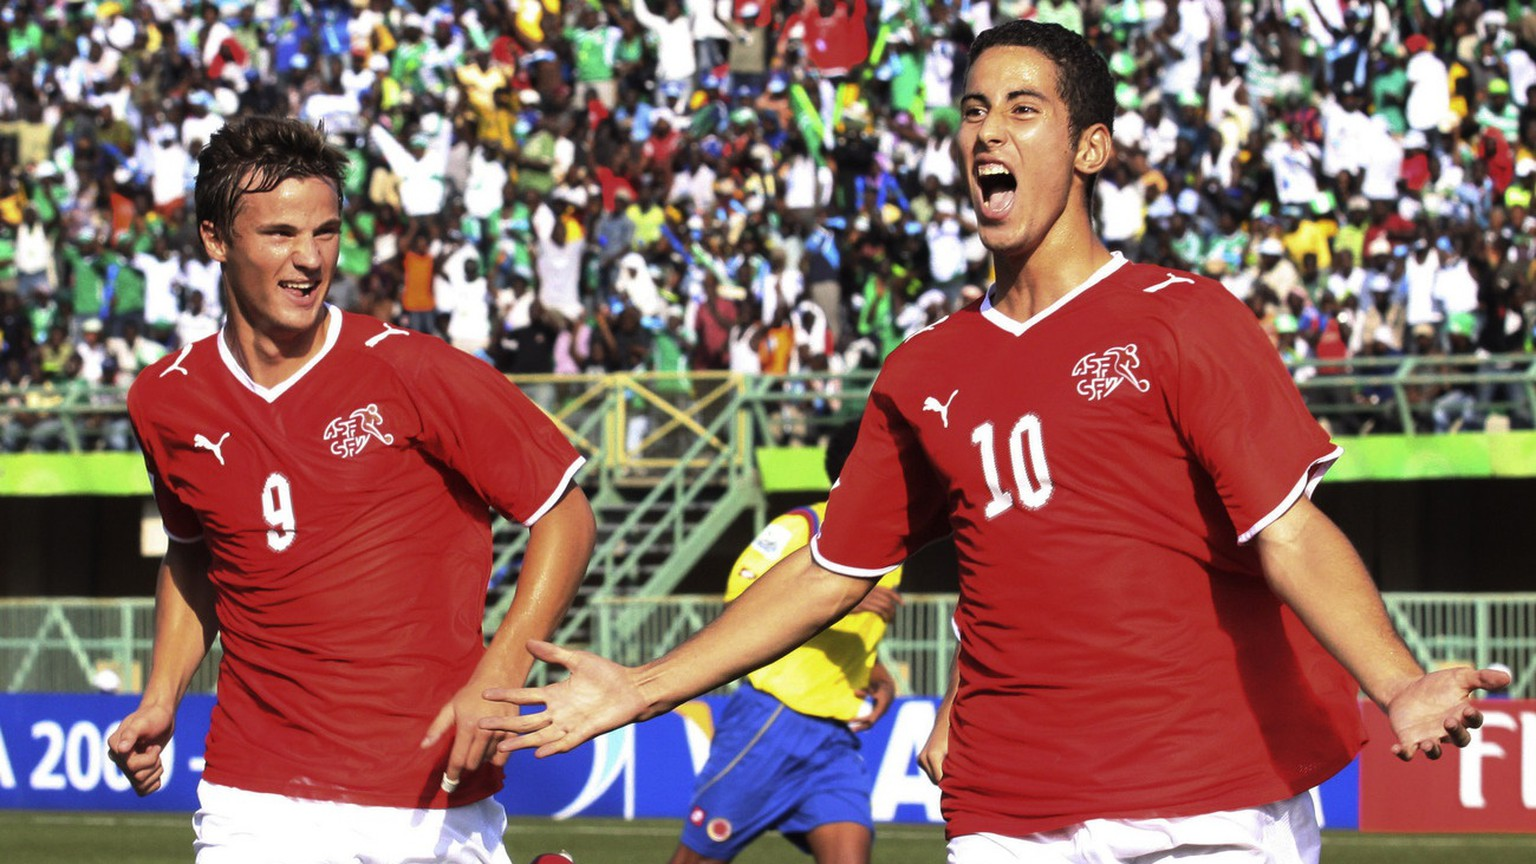 Switzerland's Nassim Ben Khalifa, right, reacts with fellow team member Haris Seferovic, left, after scoring on a penalty kick against Colombia during their Under-17 World Cup semifinal soccer match in Lagos, Nigeria, Thursday, Nov. 12, 2009. (AP Photo/Sunday Alamba)